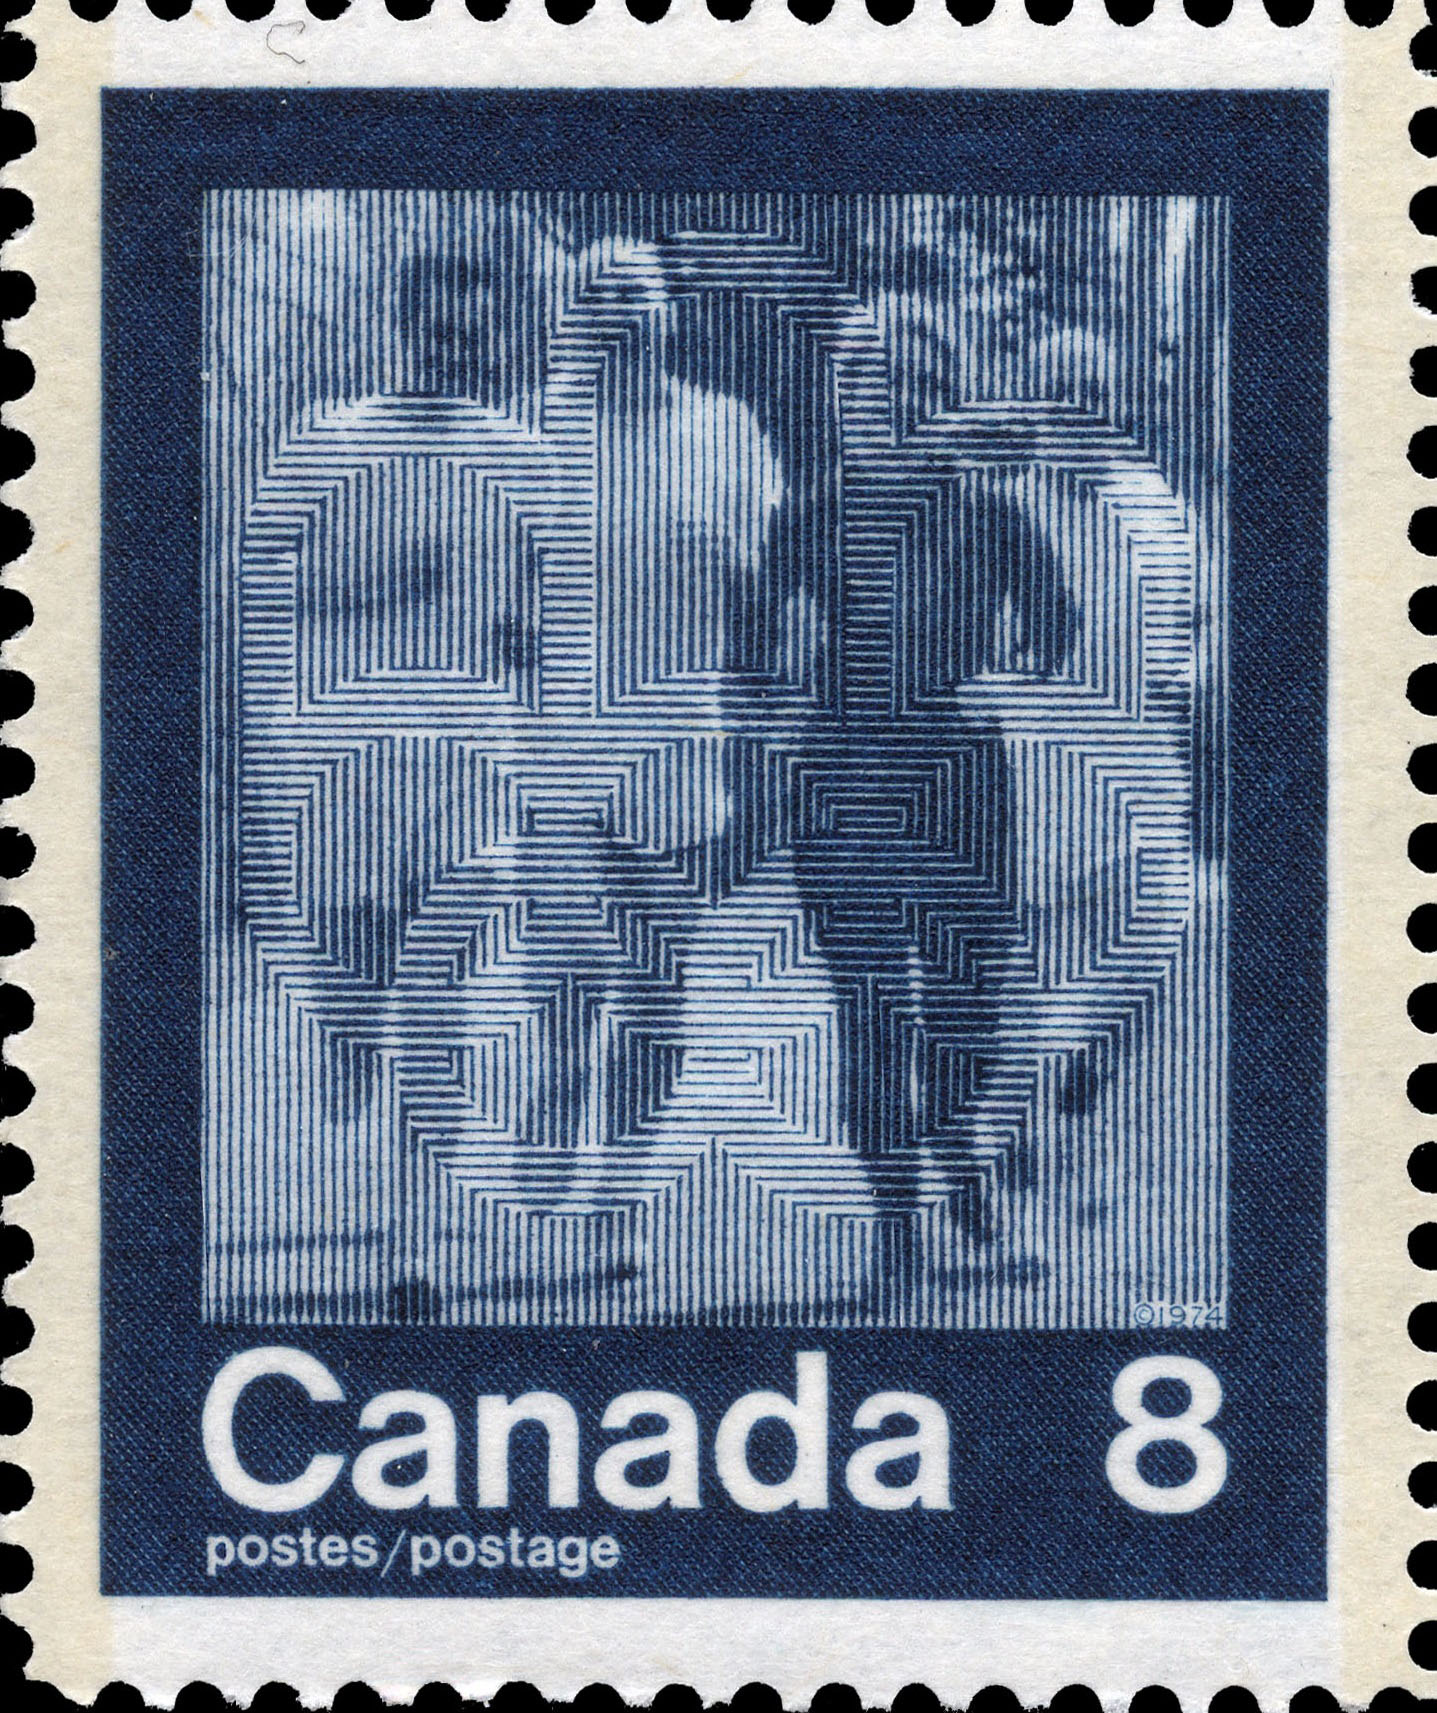 Jogging Canada Postage Stamp | 1976 Olympic Games, Keeping Fit